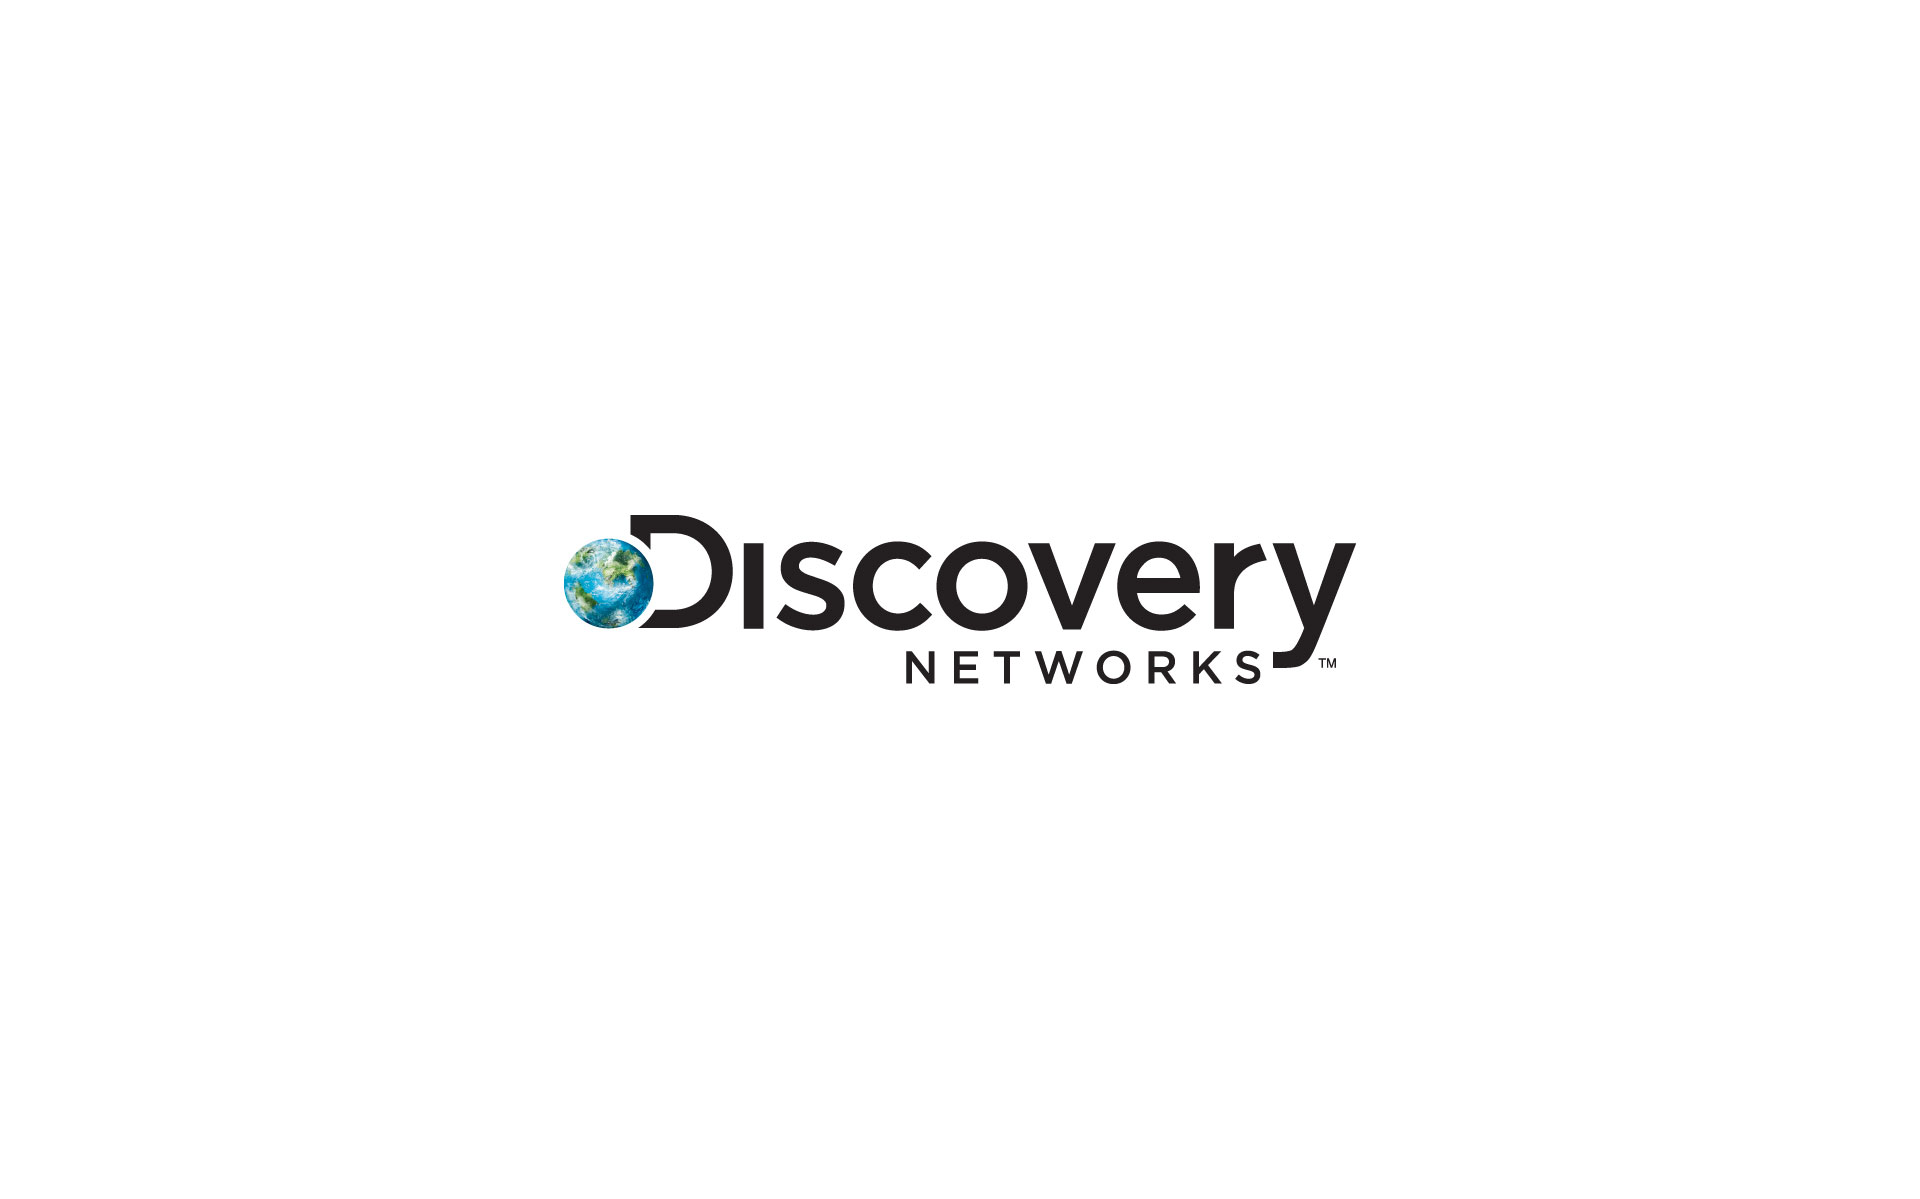 Discovery Networks marketing materials & event work designed by Amy Howard